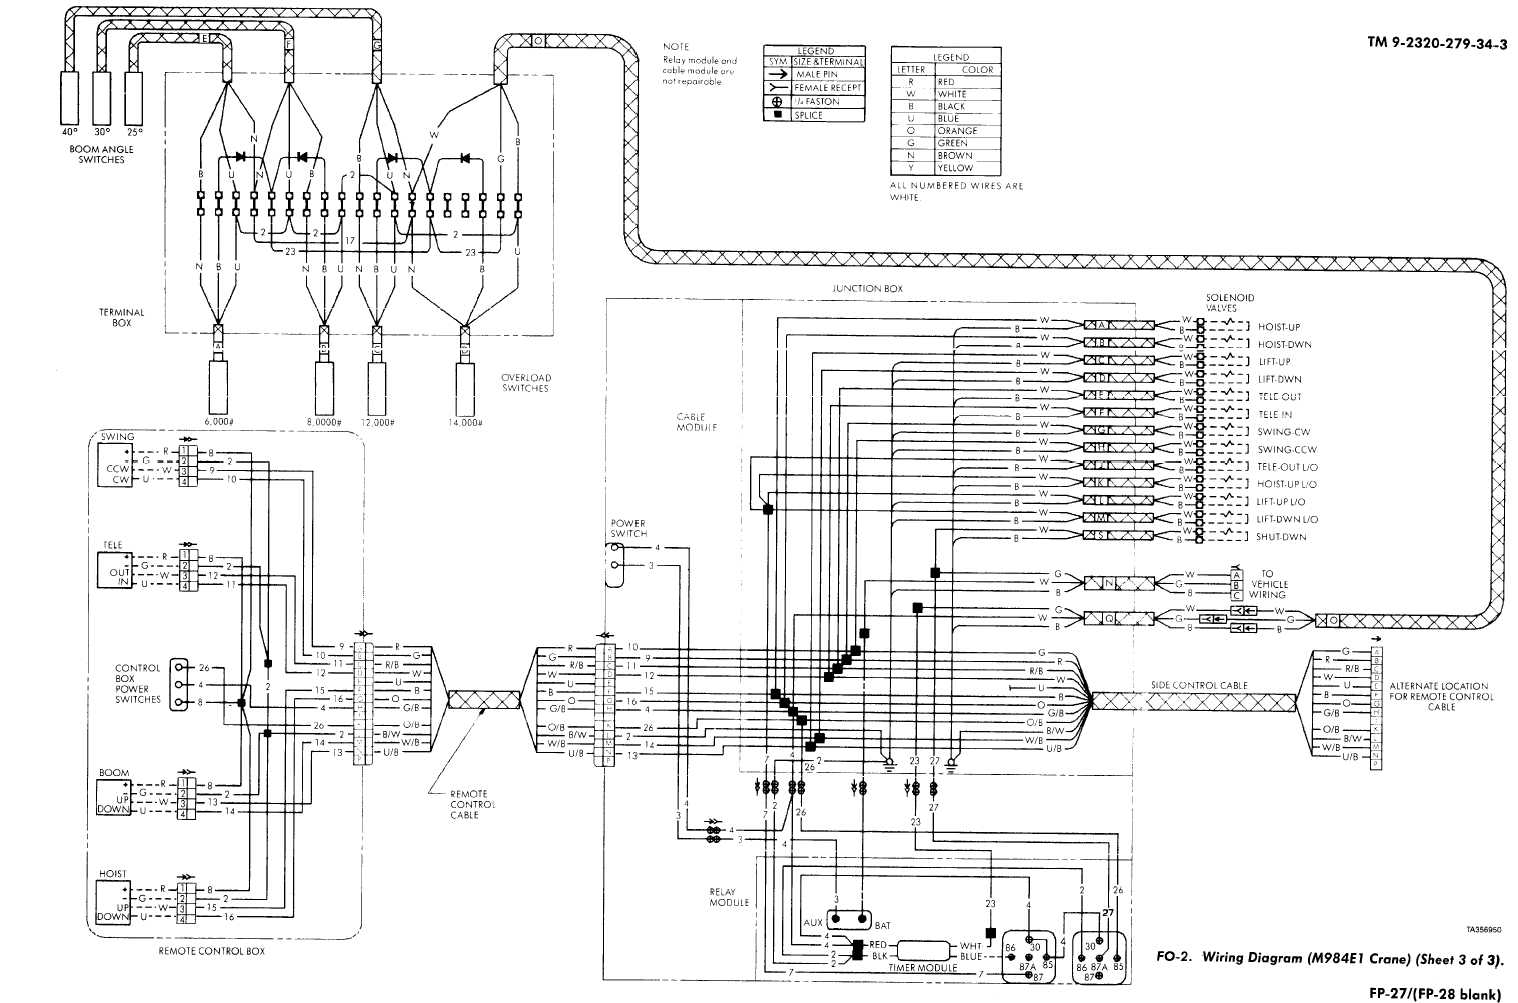 crane wiring diagram detailed schematics diagram rh antonartgallery com  Bridge Crane Diagram Crane Components Diagram